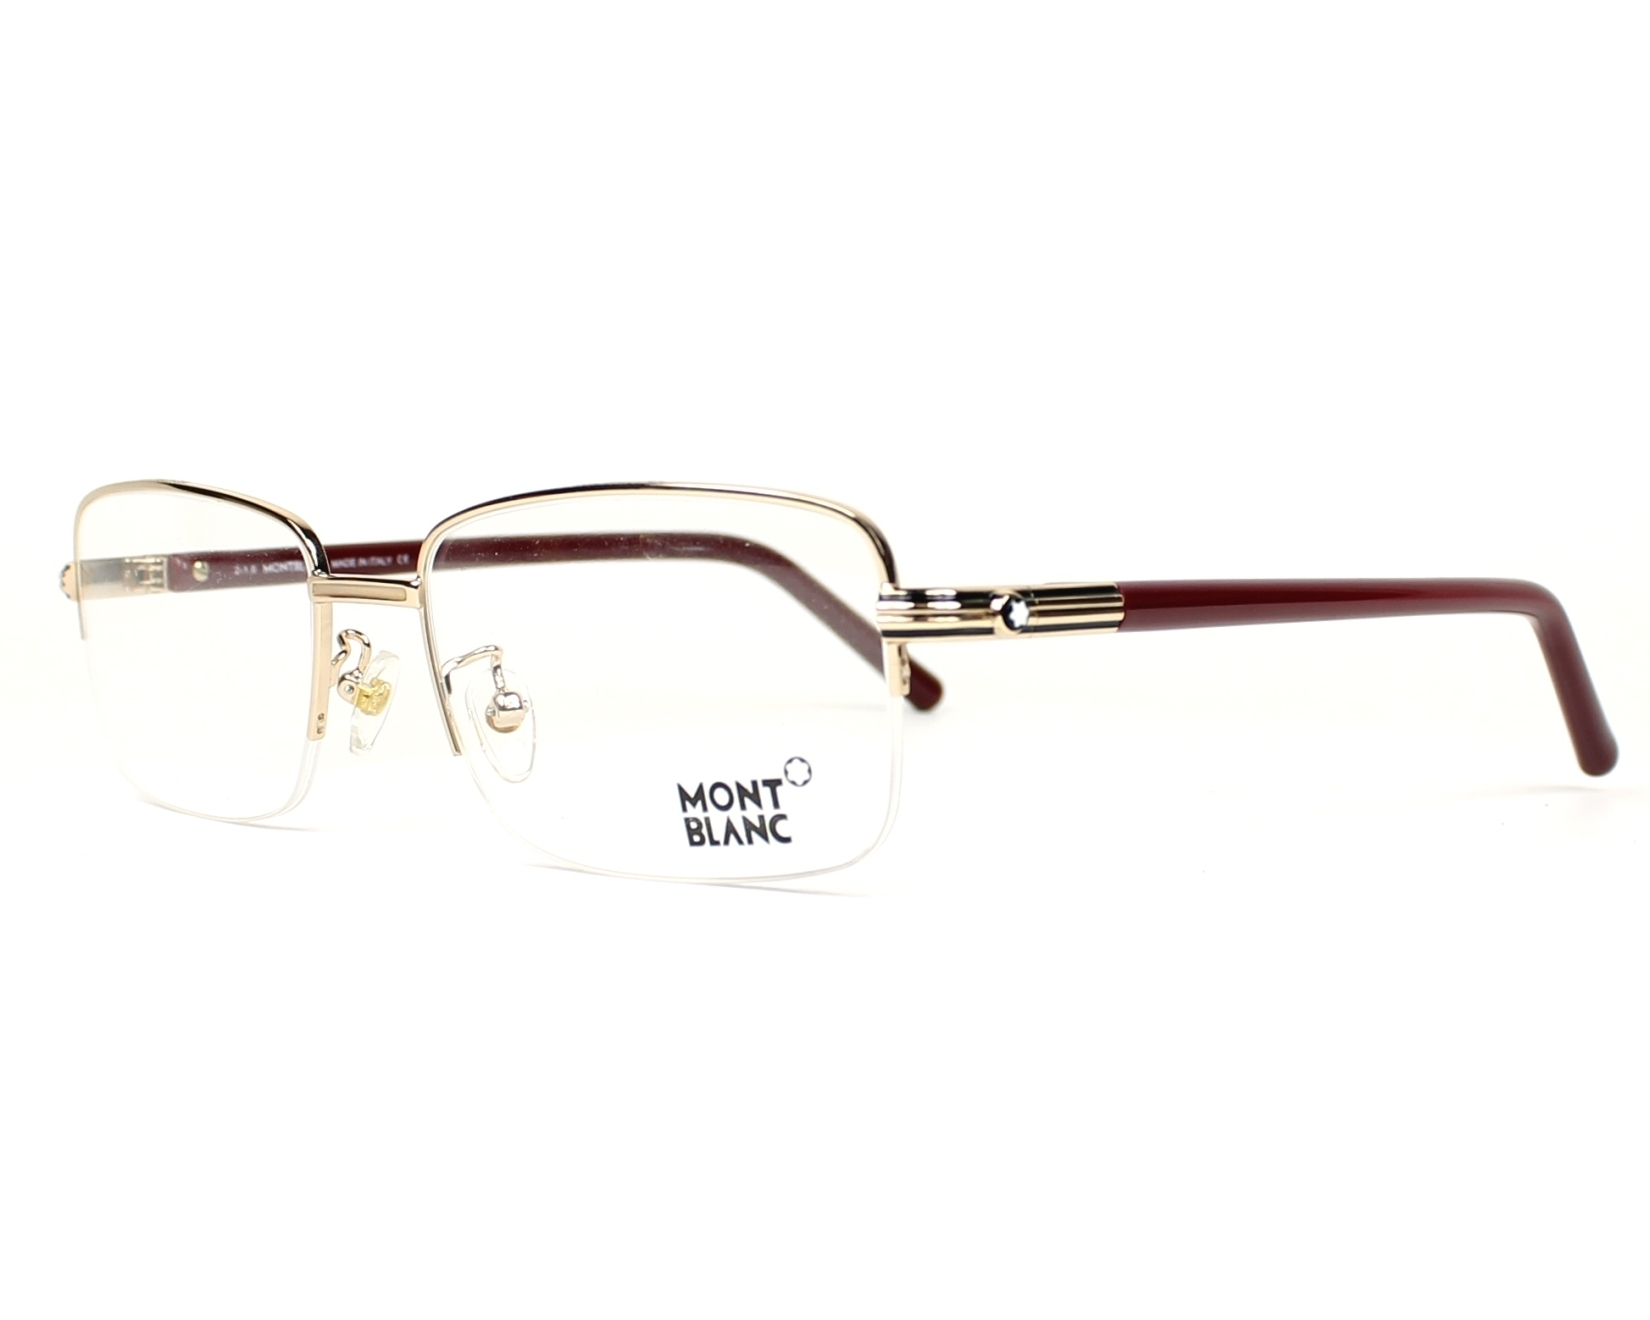 Order your Mont Blanc eyeglasses MB478 028 57 today